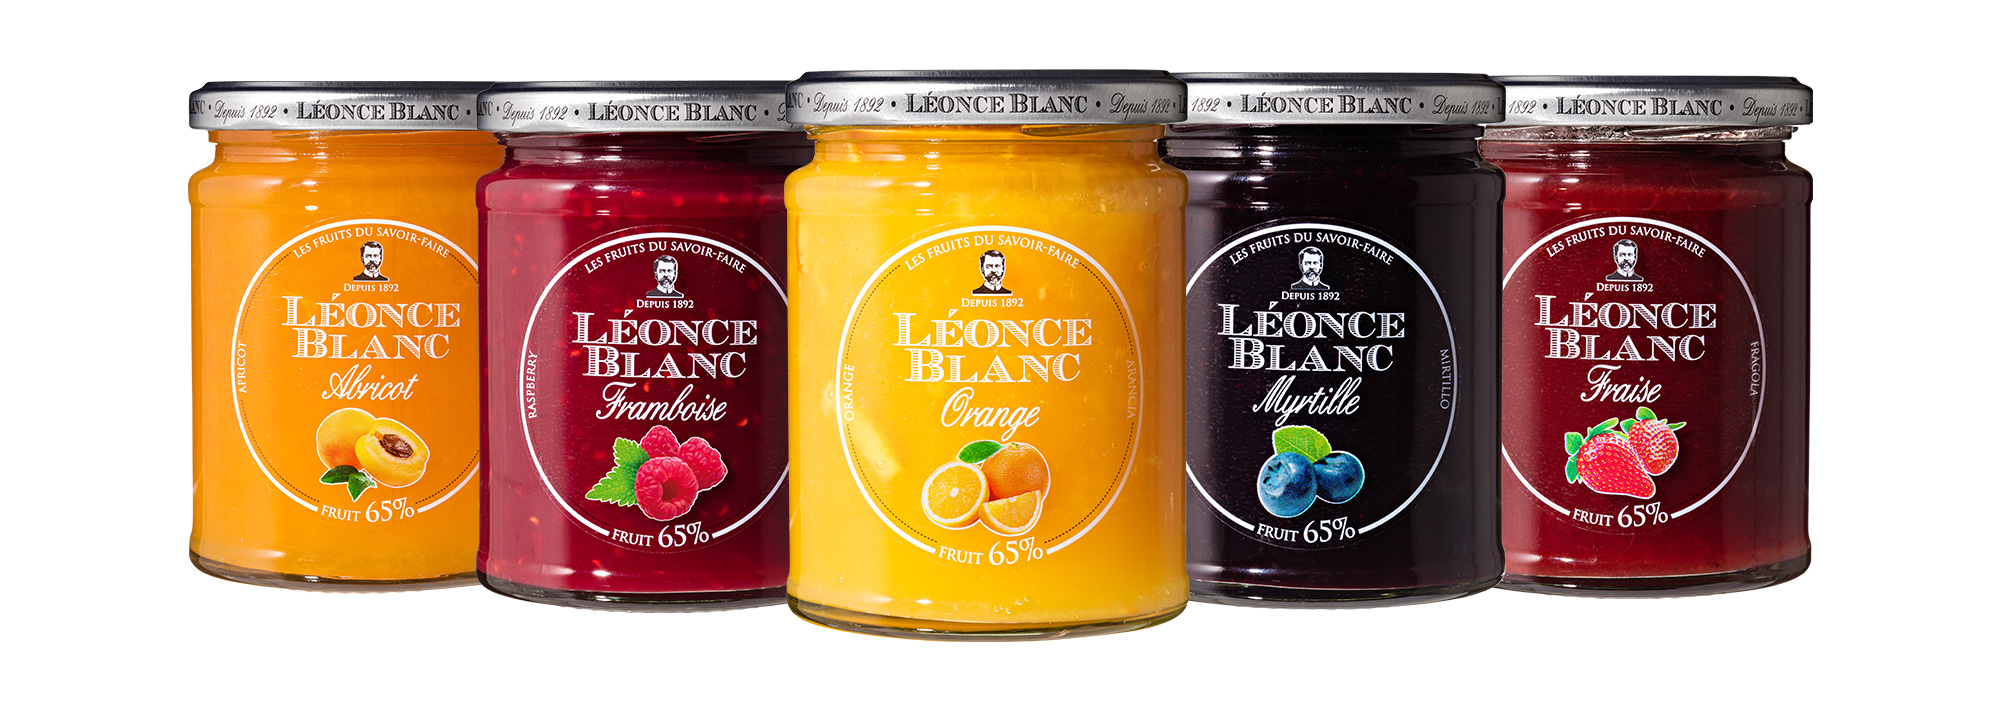 Gamme Fruits Gourmands Léonce Blanc